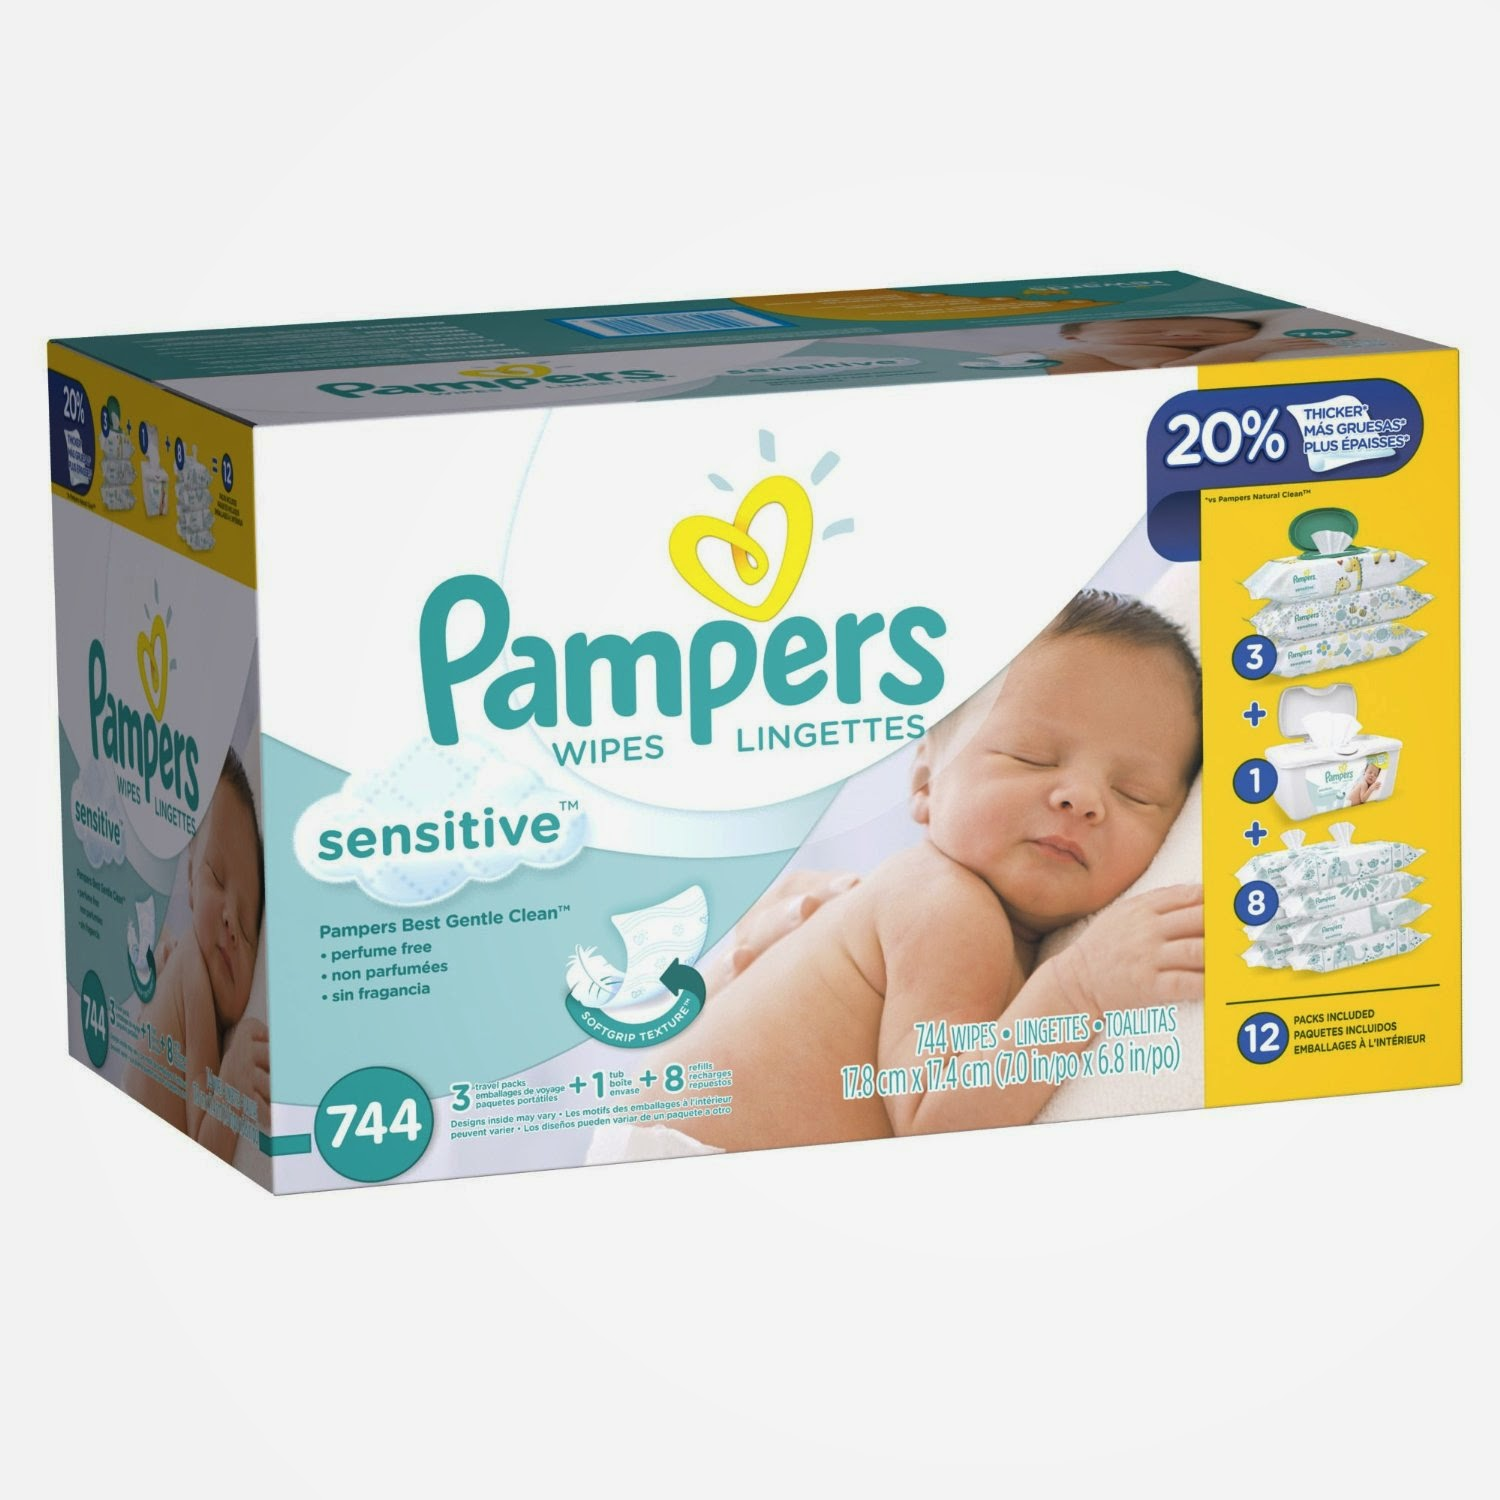 https://www.amazon.com/Pampers-Sensitive-Wipes-Pack-Count/dp/B00DDMJ332/ref=as_li_ss_til?tag=soutsubusavi-20&linkCode=w01&linkId=U2QJZLJQUIQ2JXMC&creativeASIN=B00DDMJ332